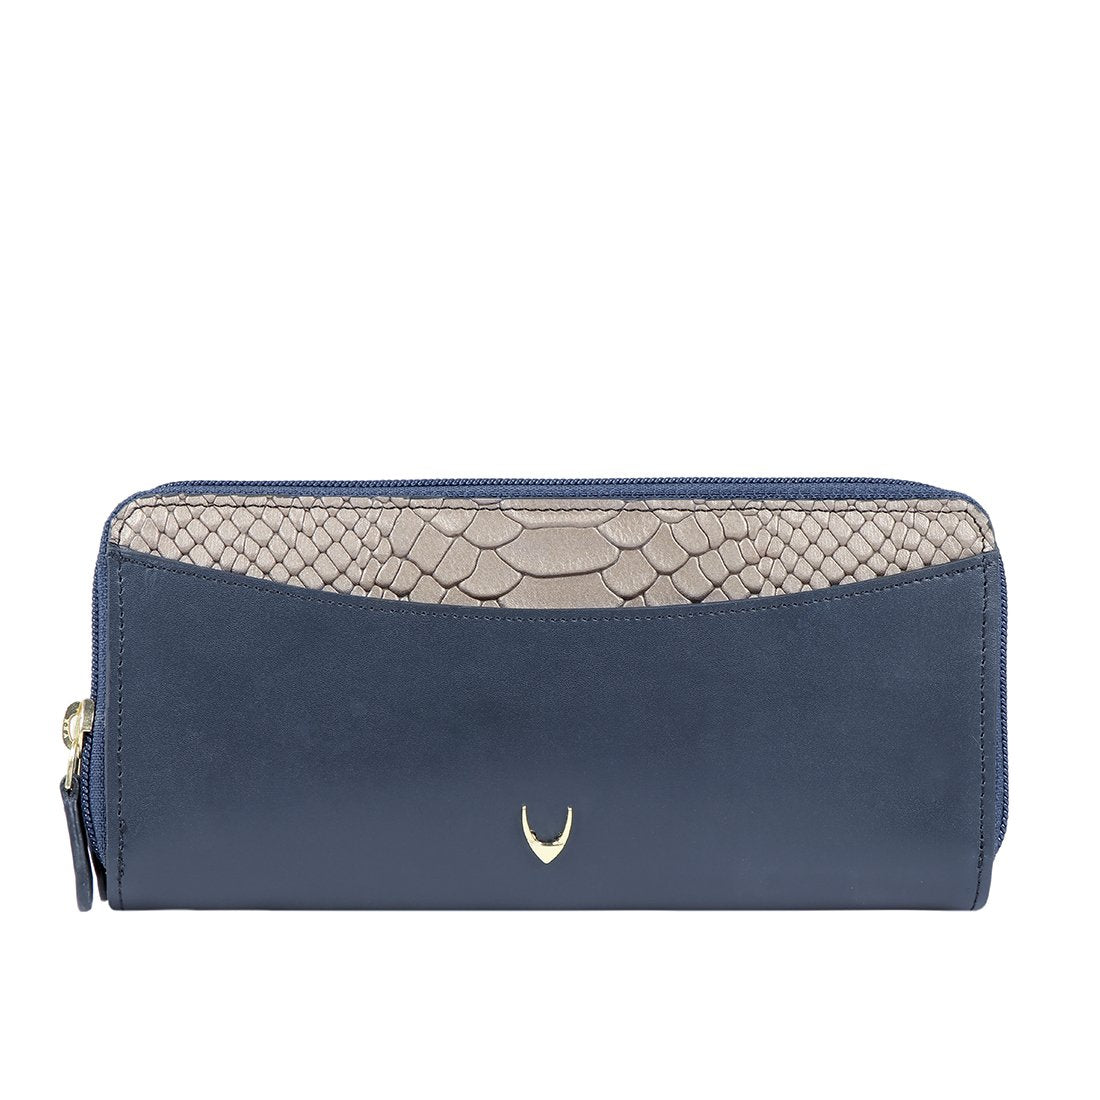 LILAC W1 DOUBLE ZIP AROUND WALLET